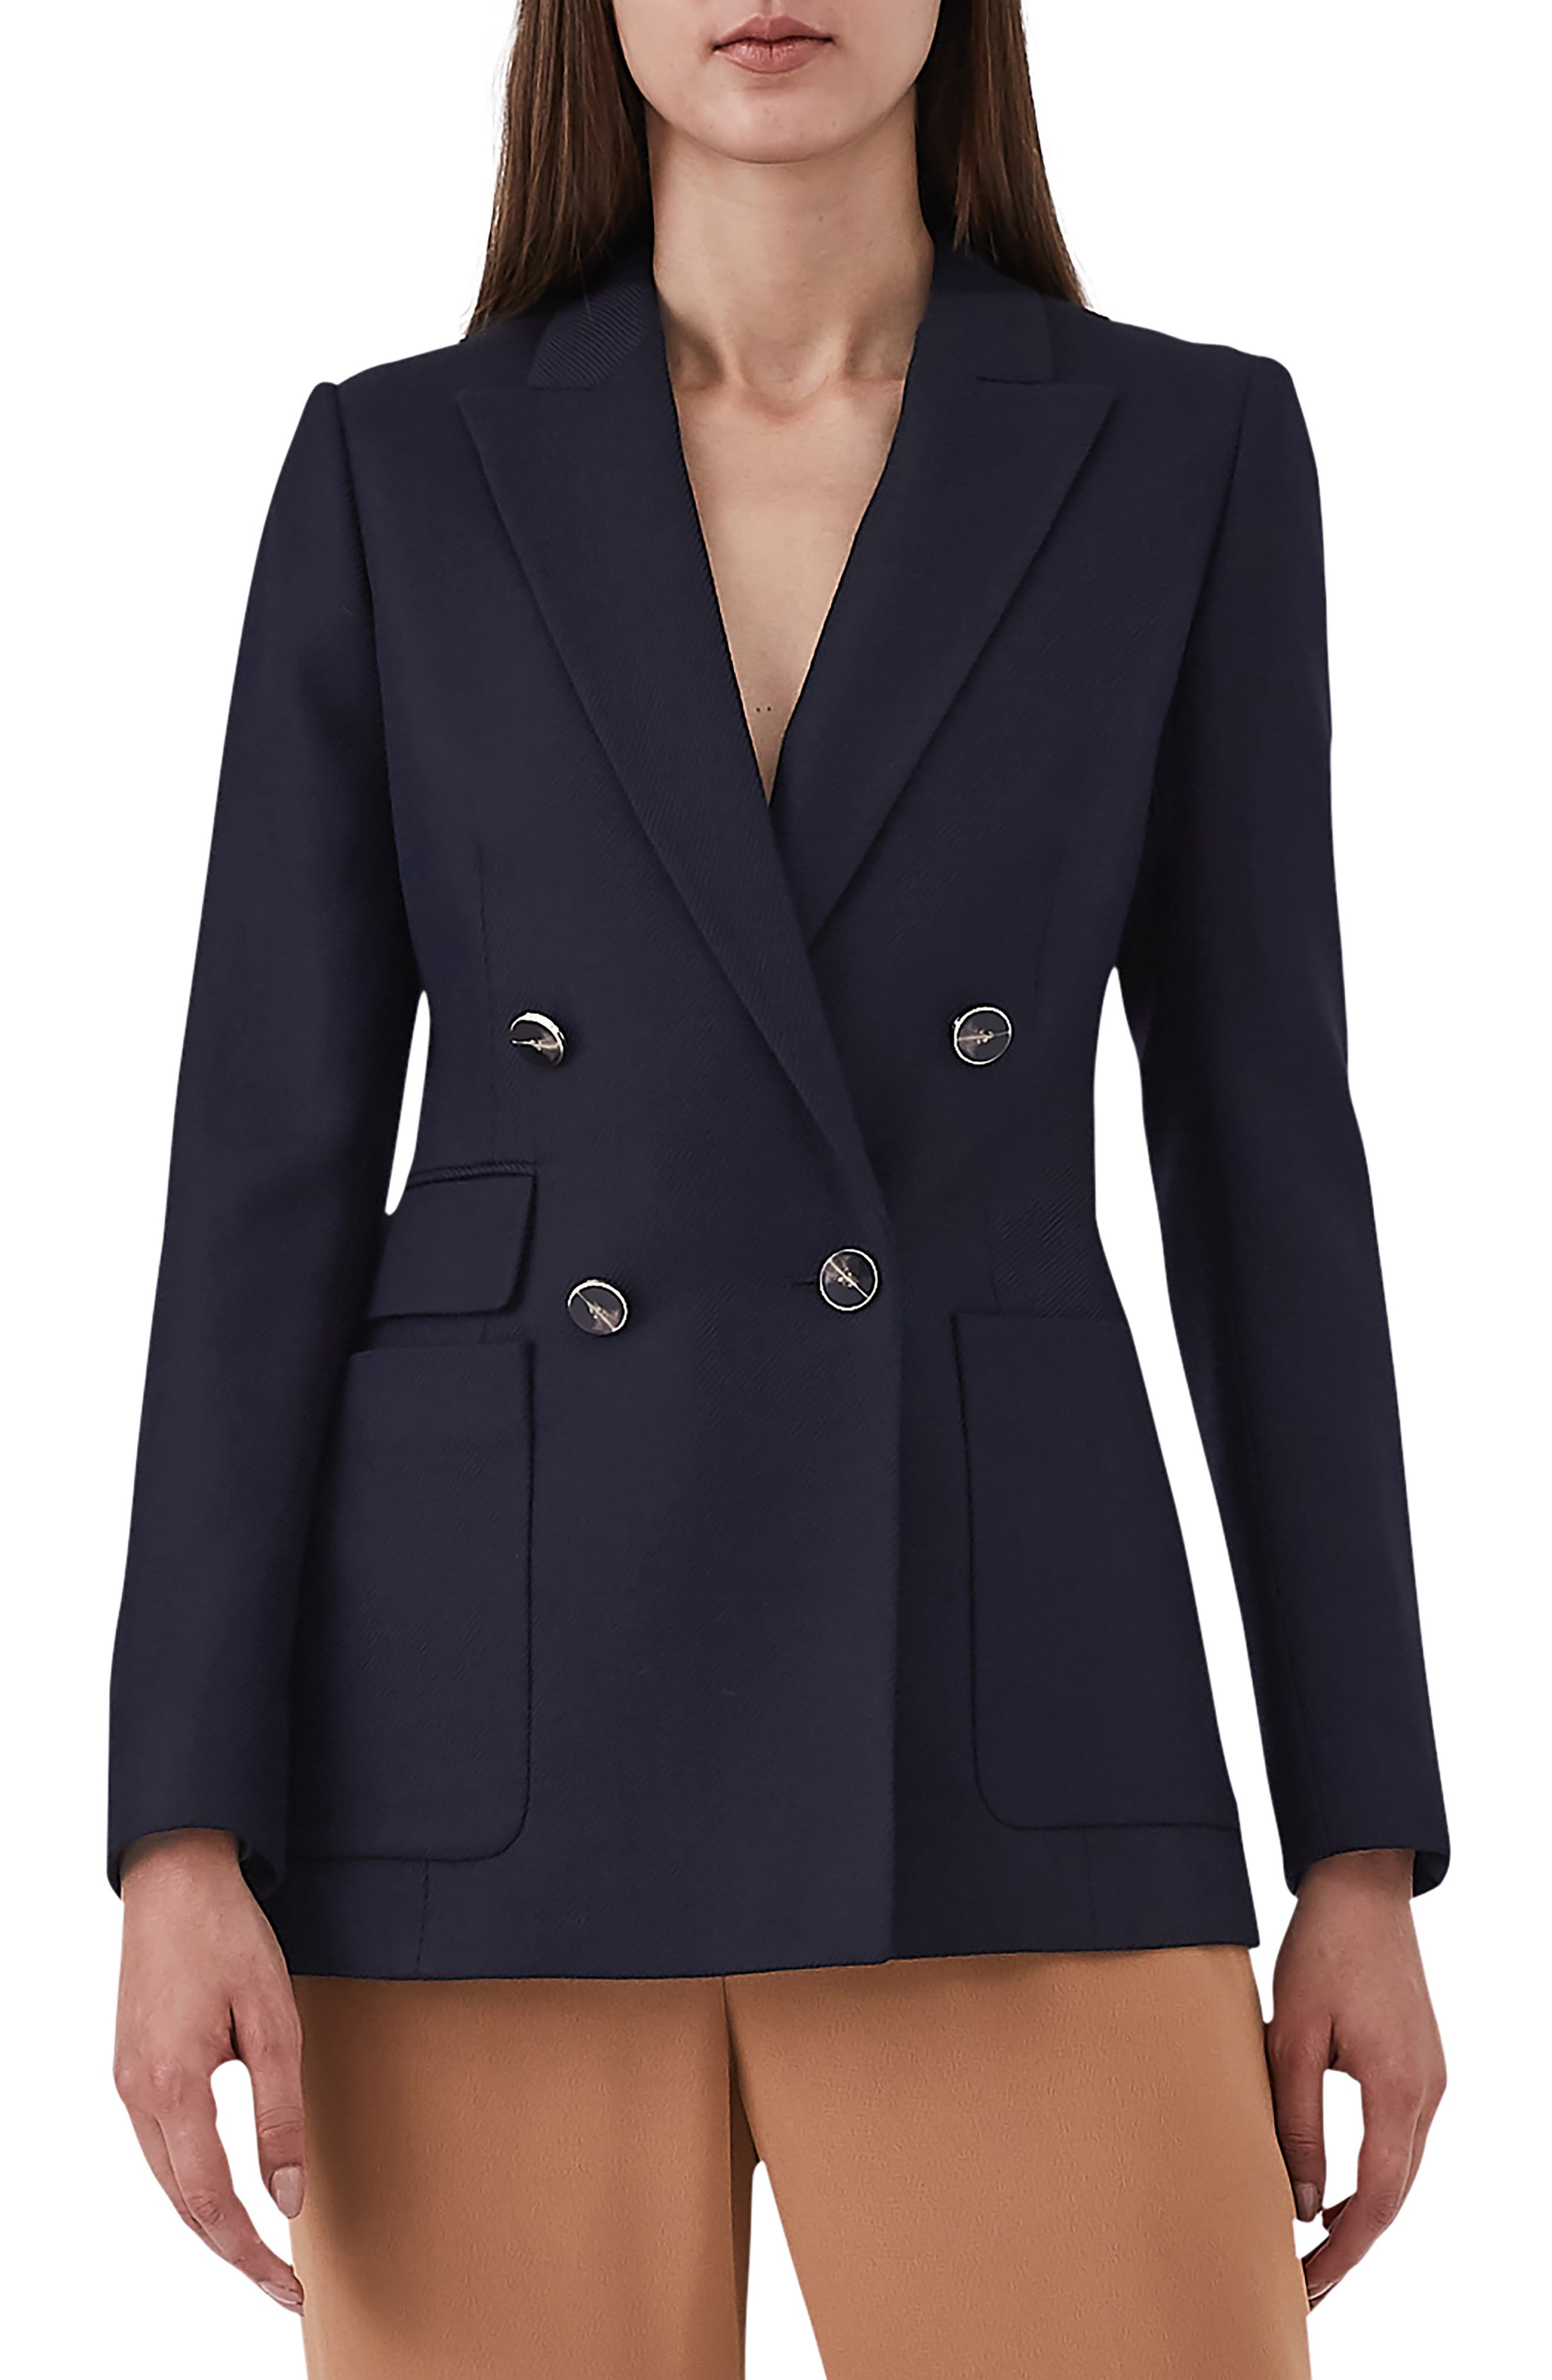 Tate Double Breasted Jacket,                             Main thumbnail 1, color,                             NAVY